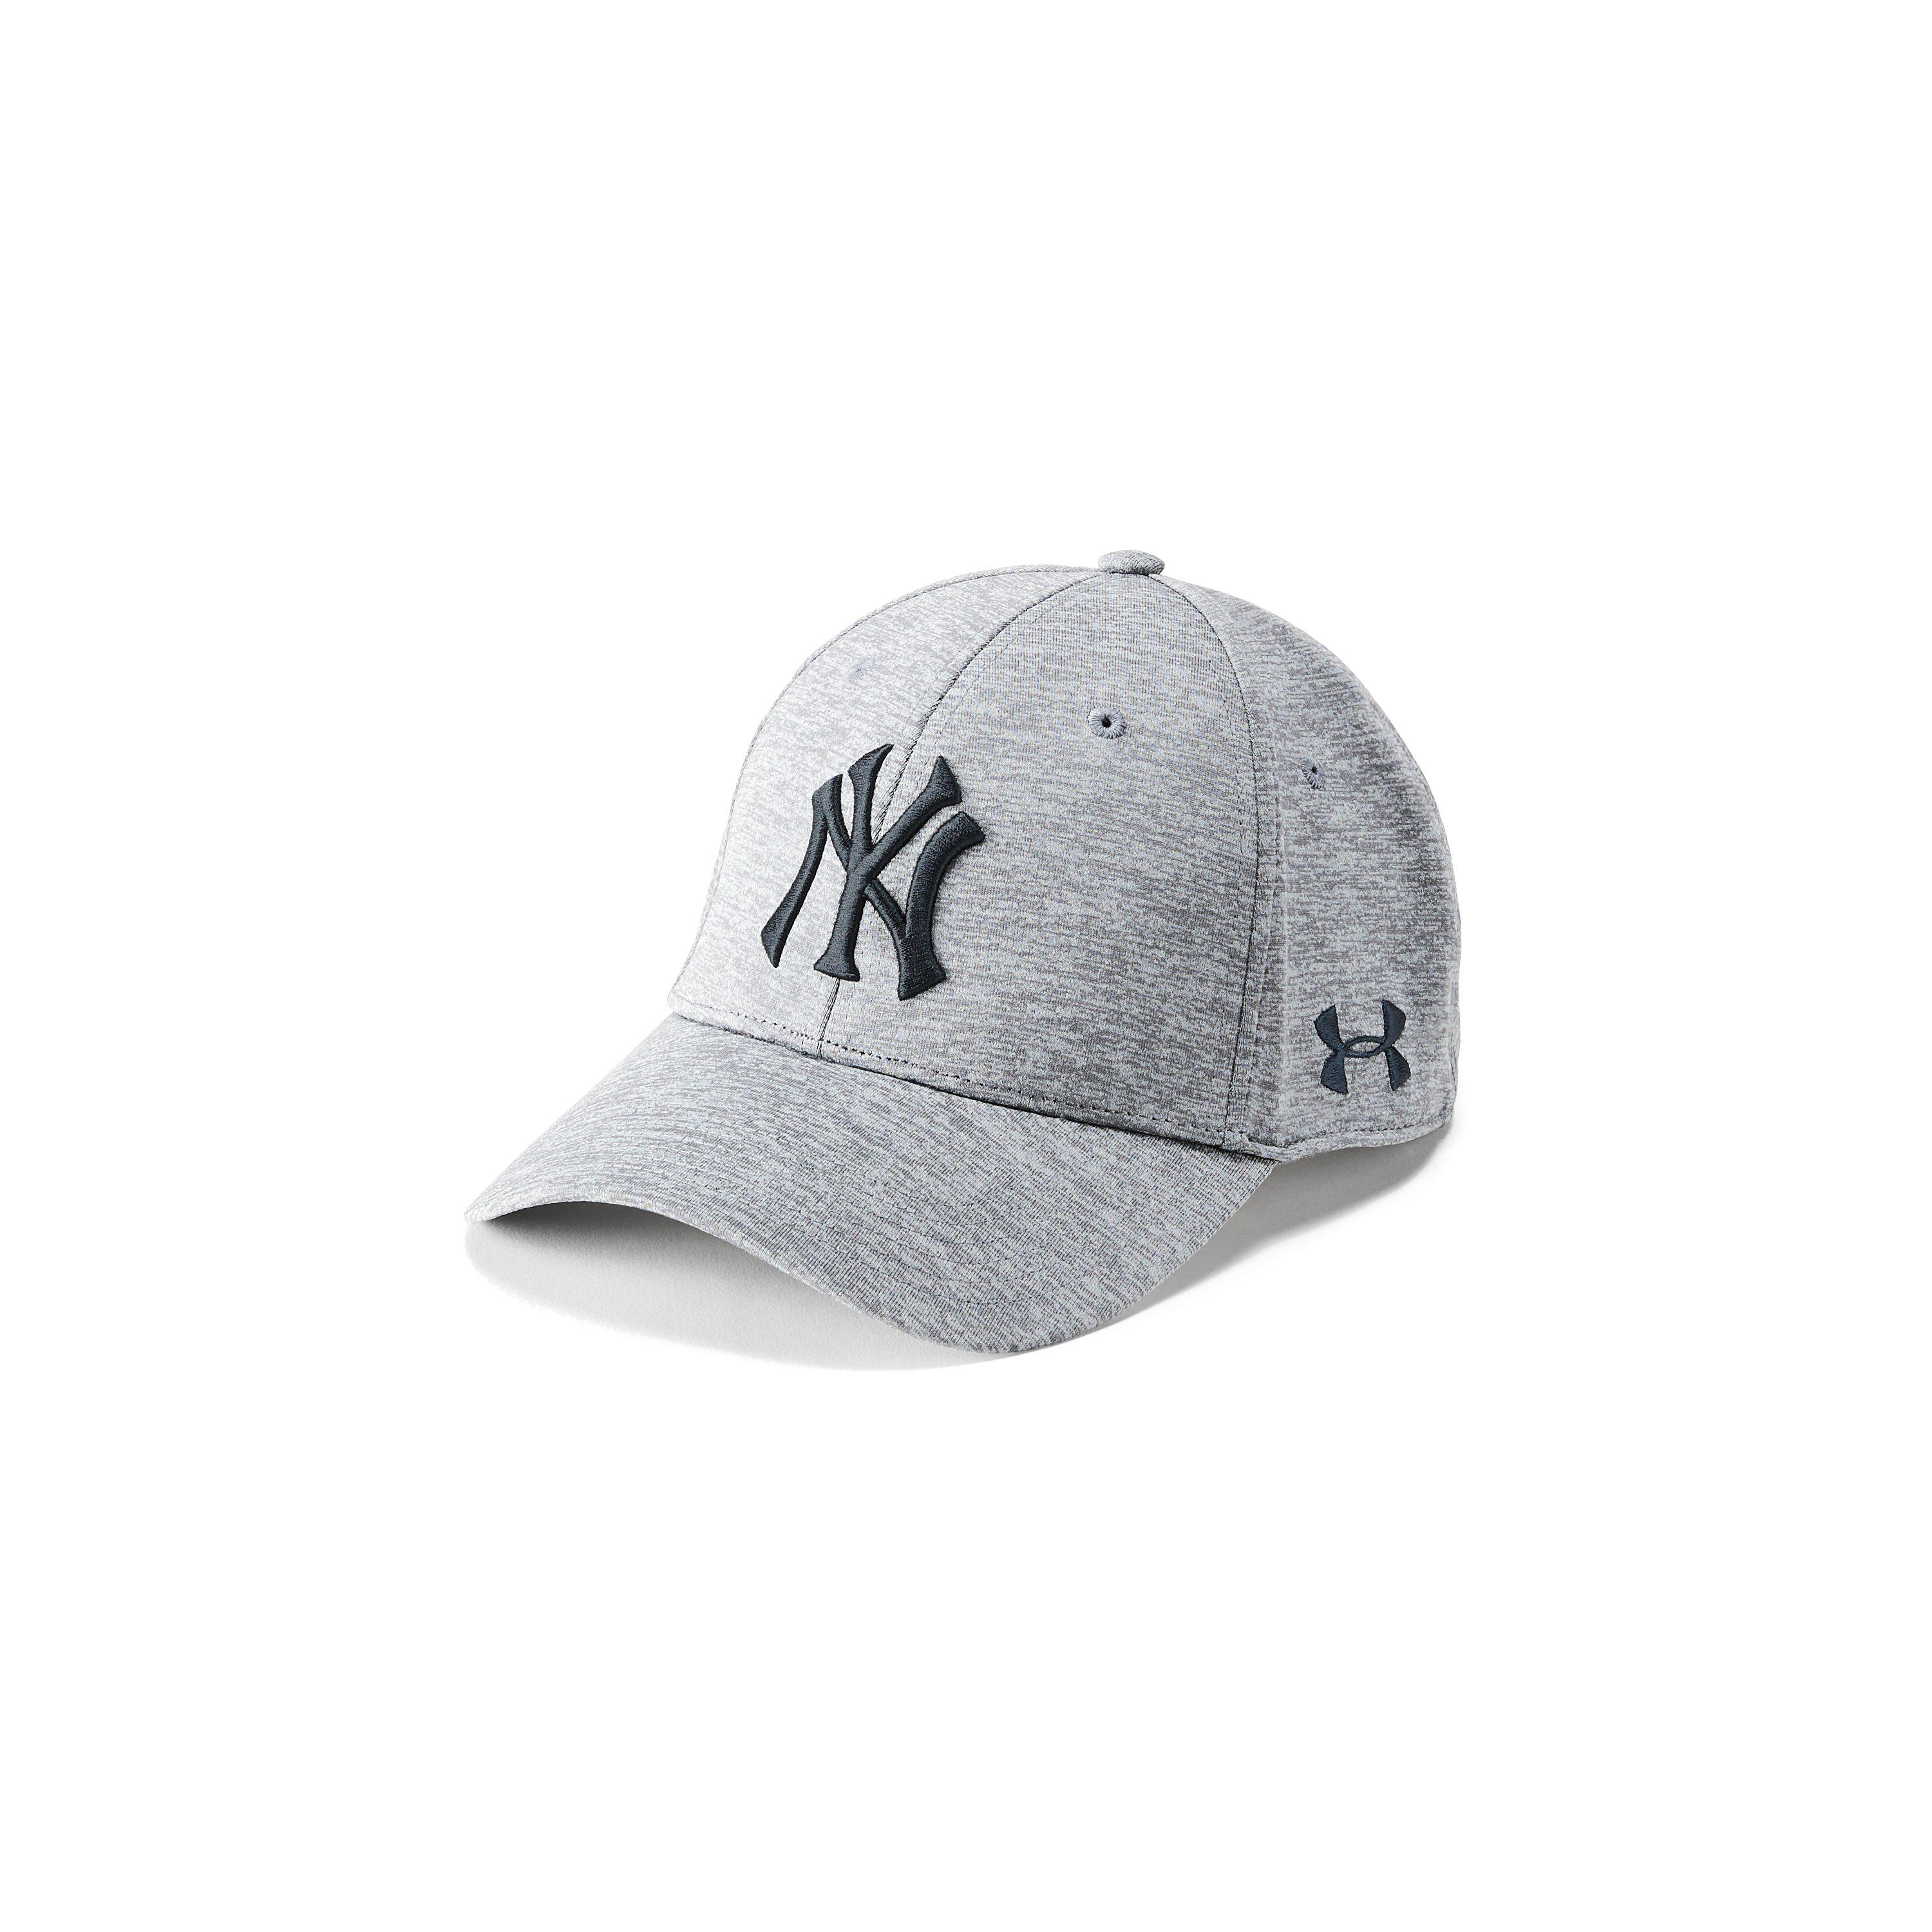 sports shoes 1bf69 7c750 cheap lyst under armour mens mlb twist closer cap in gray for men 061e1  12641